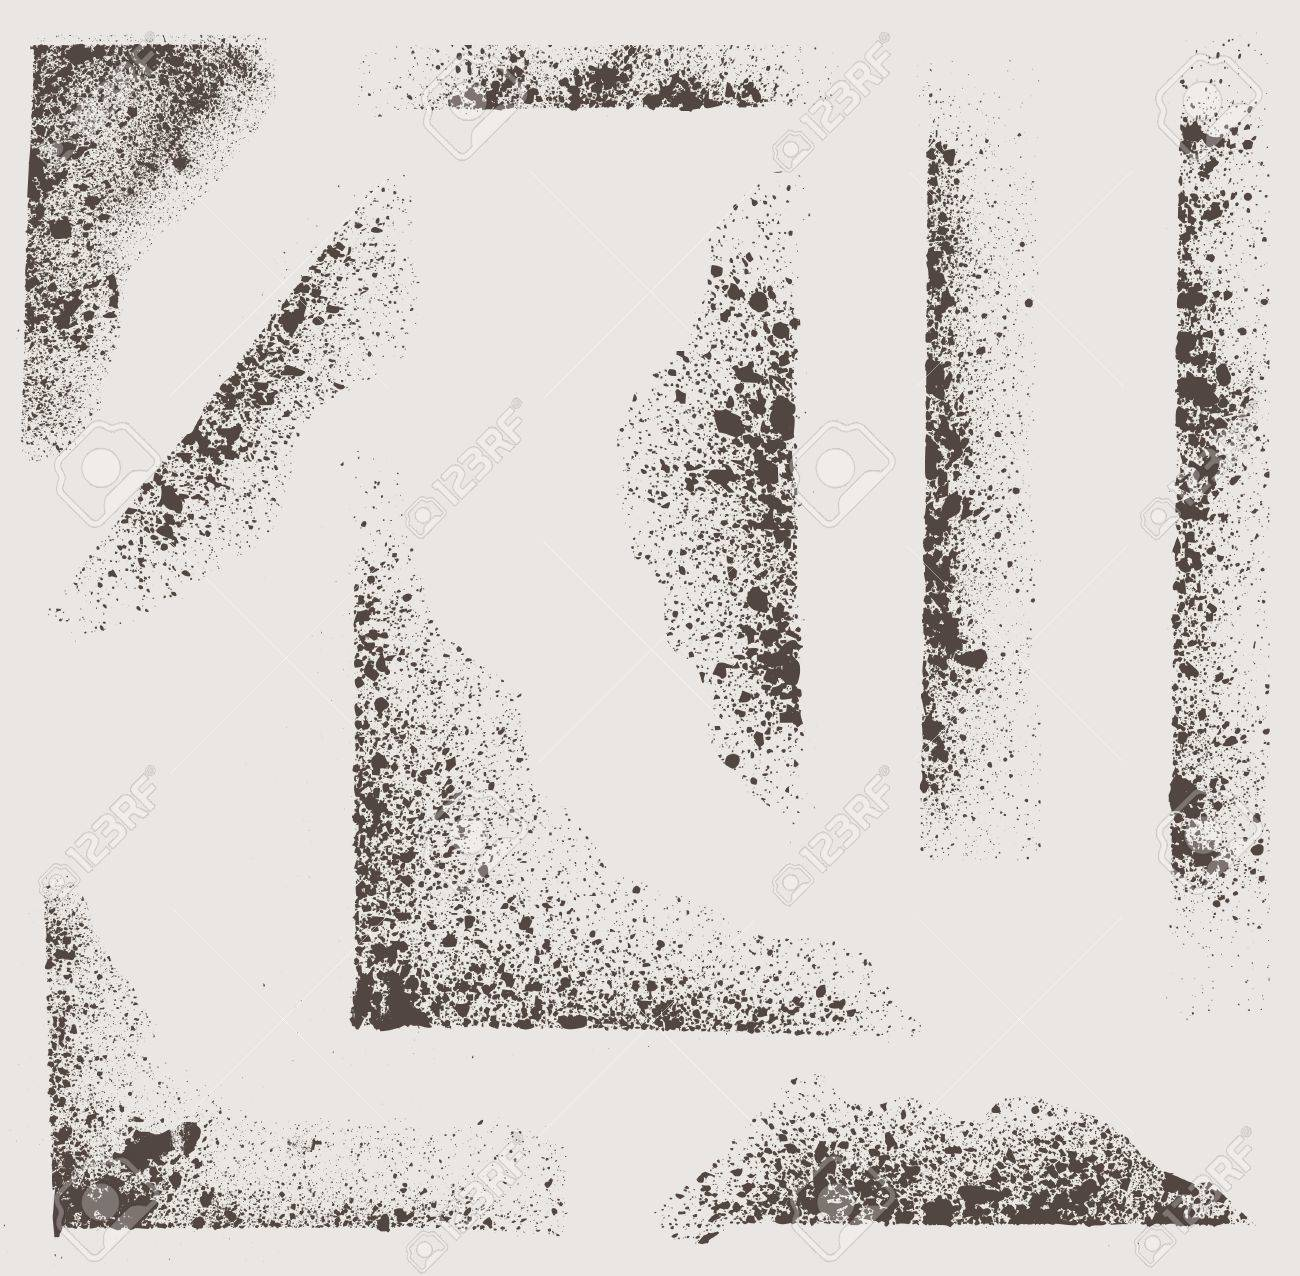 Grunge Vector Textures Brushes Royalty Free Cliparts, Vectors, And ...